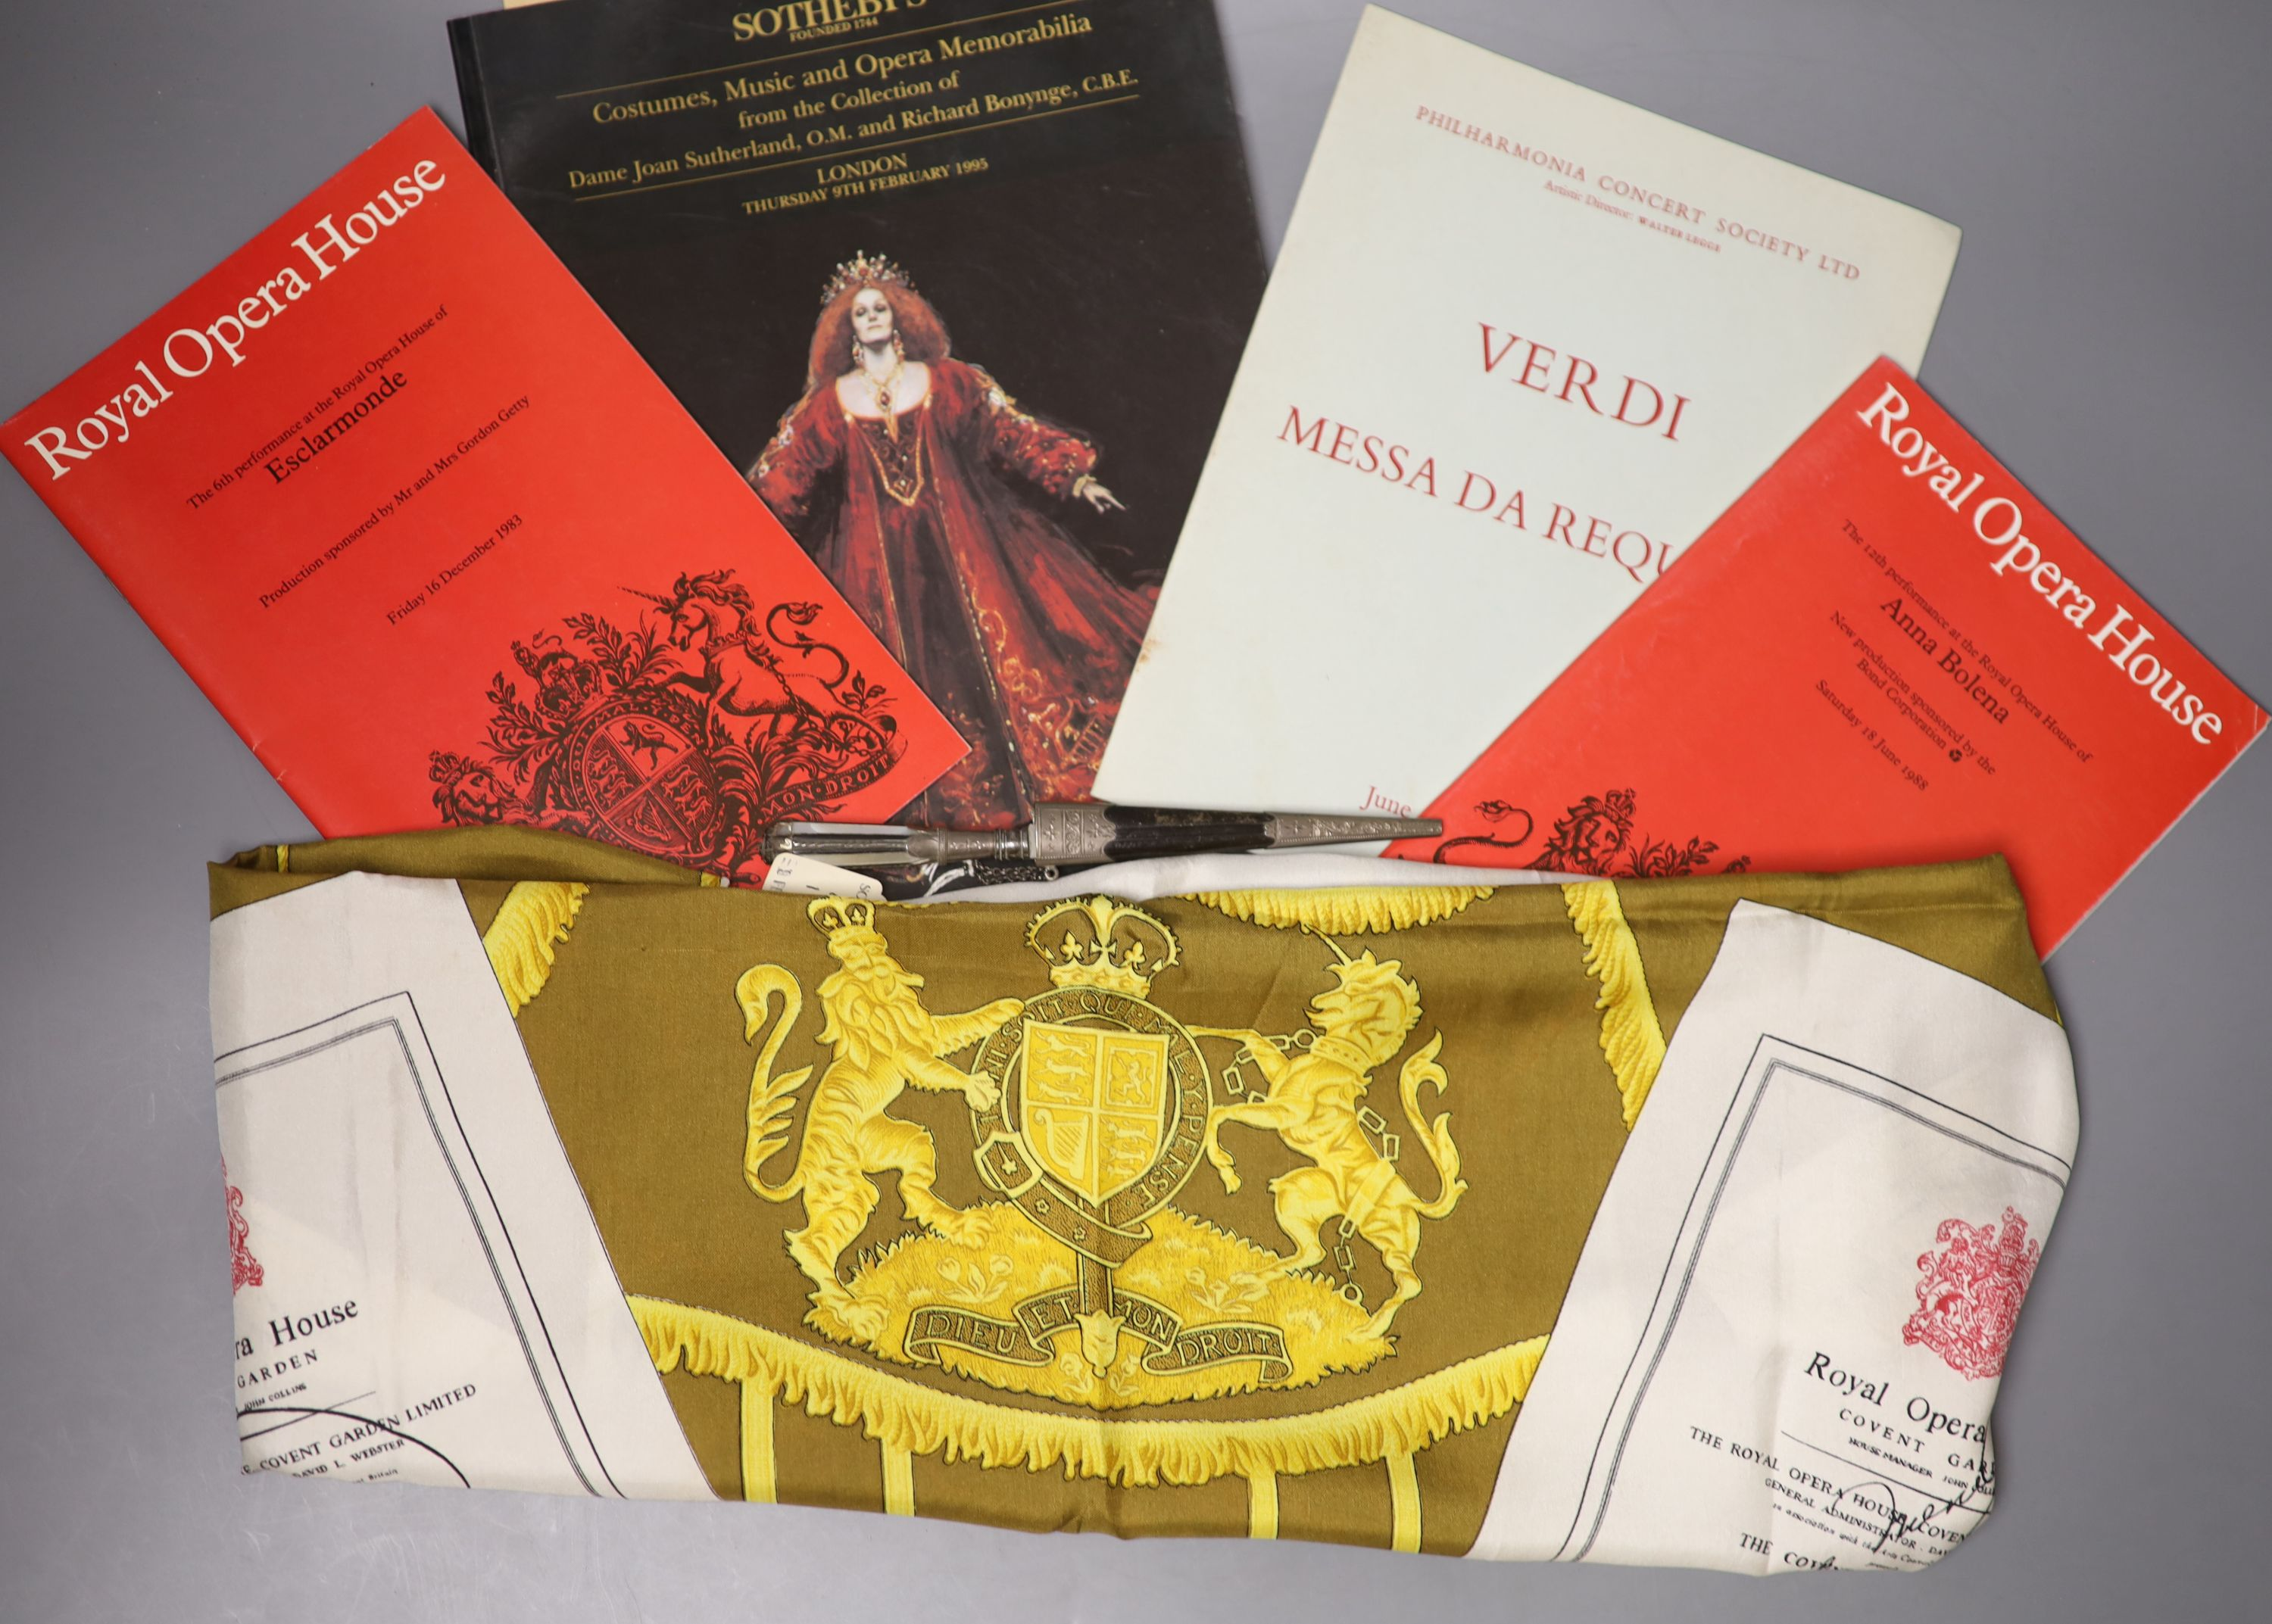 Dame Joan Sutherland memorabilia, including some Dirk sometimes used by Sutherland on stage - see